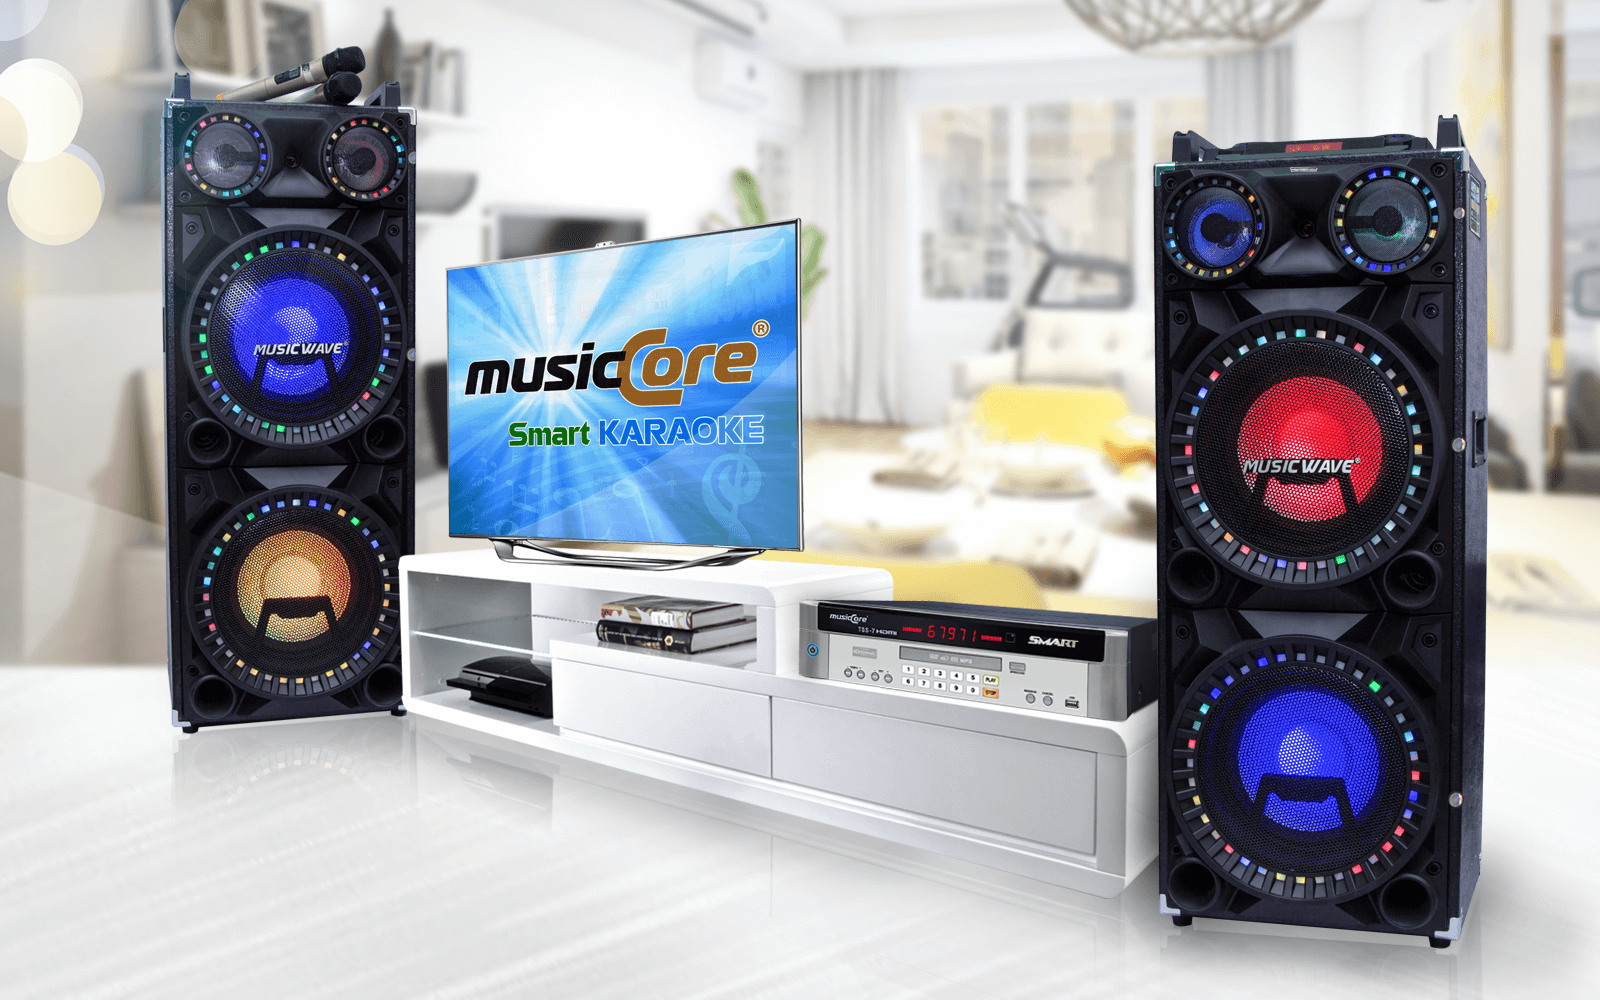 ĐẦU KARAOKE MUSICCORE TSS-7 SMART & LOA MUSIC WAVE MS-2300